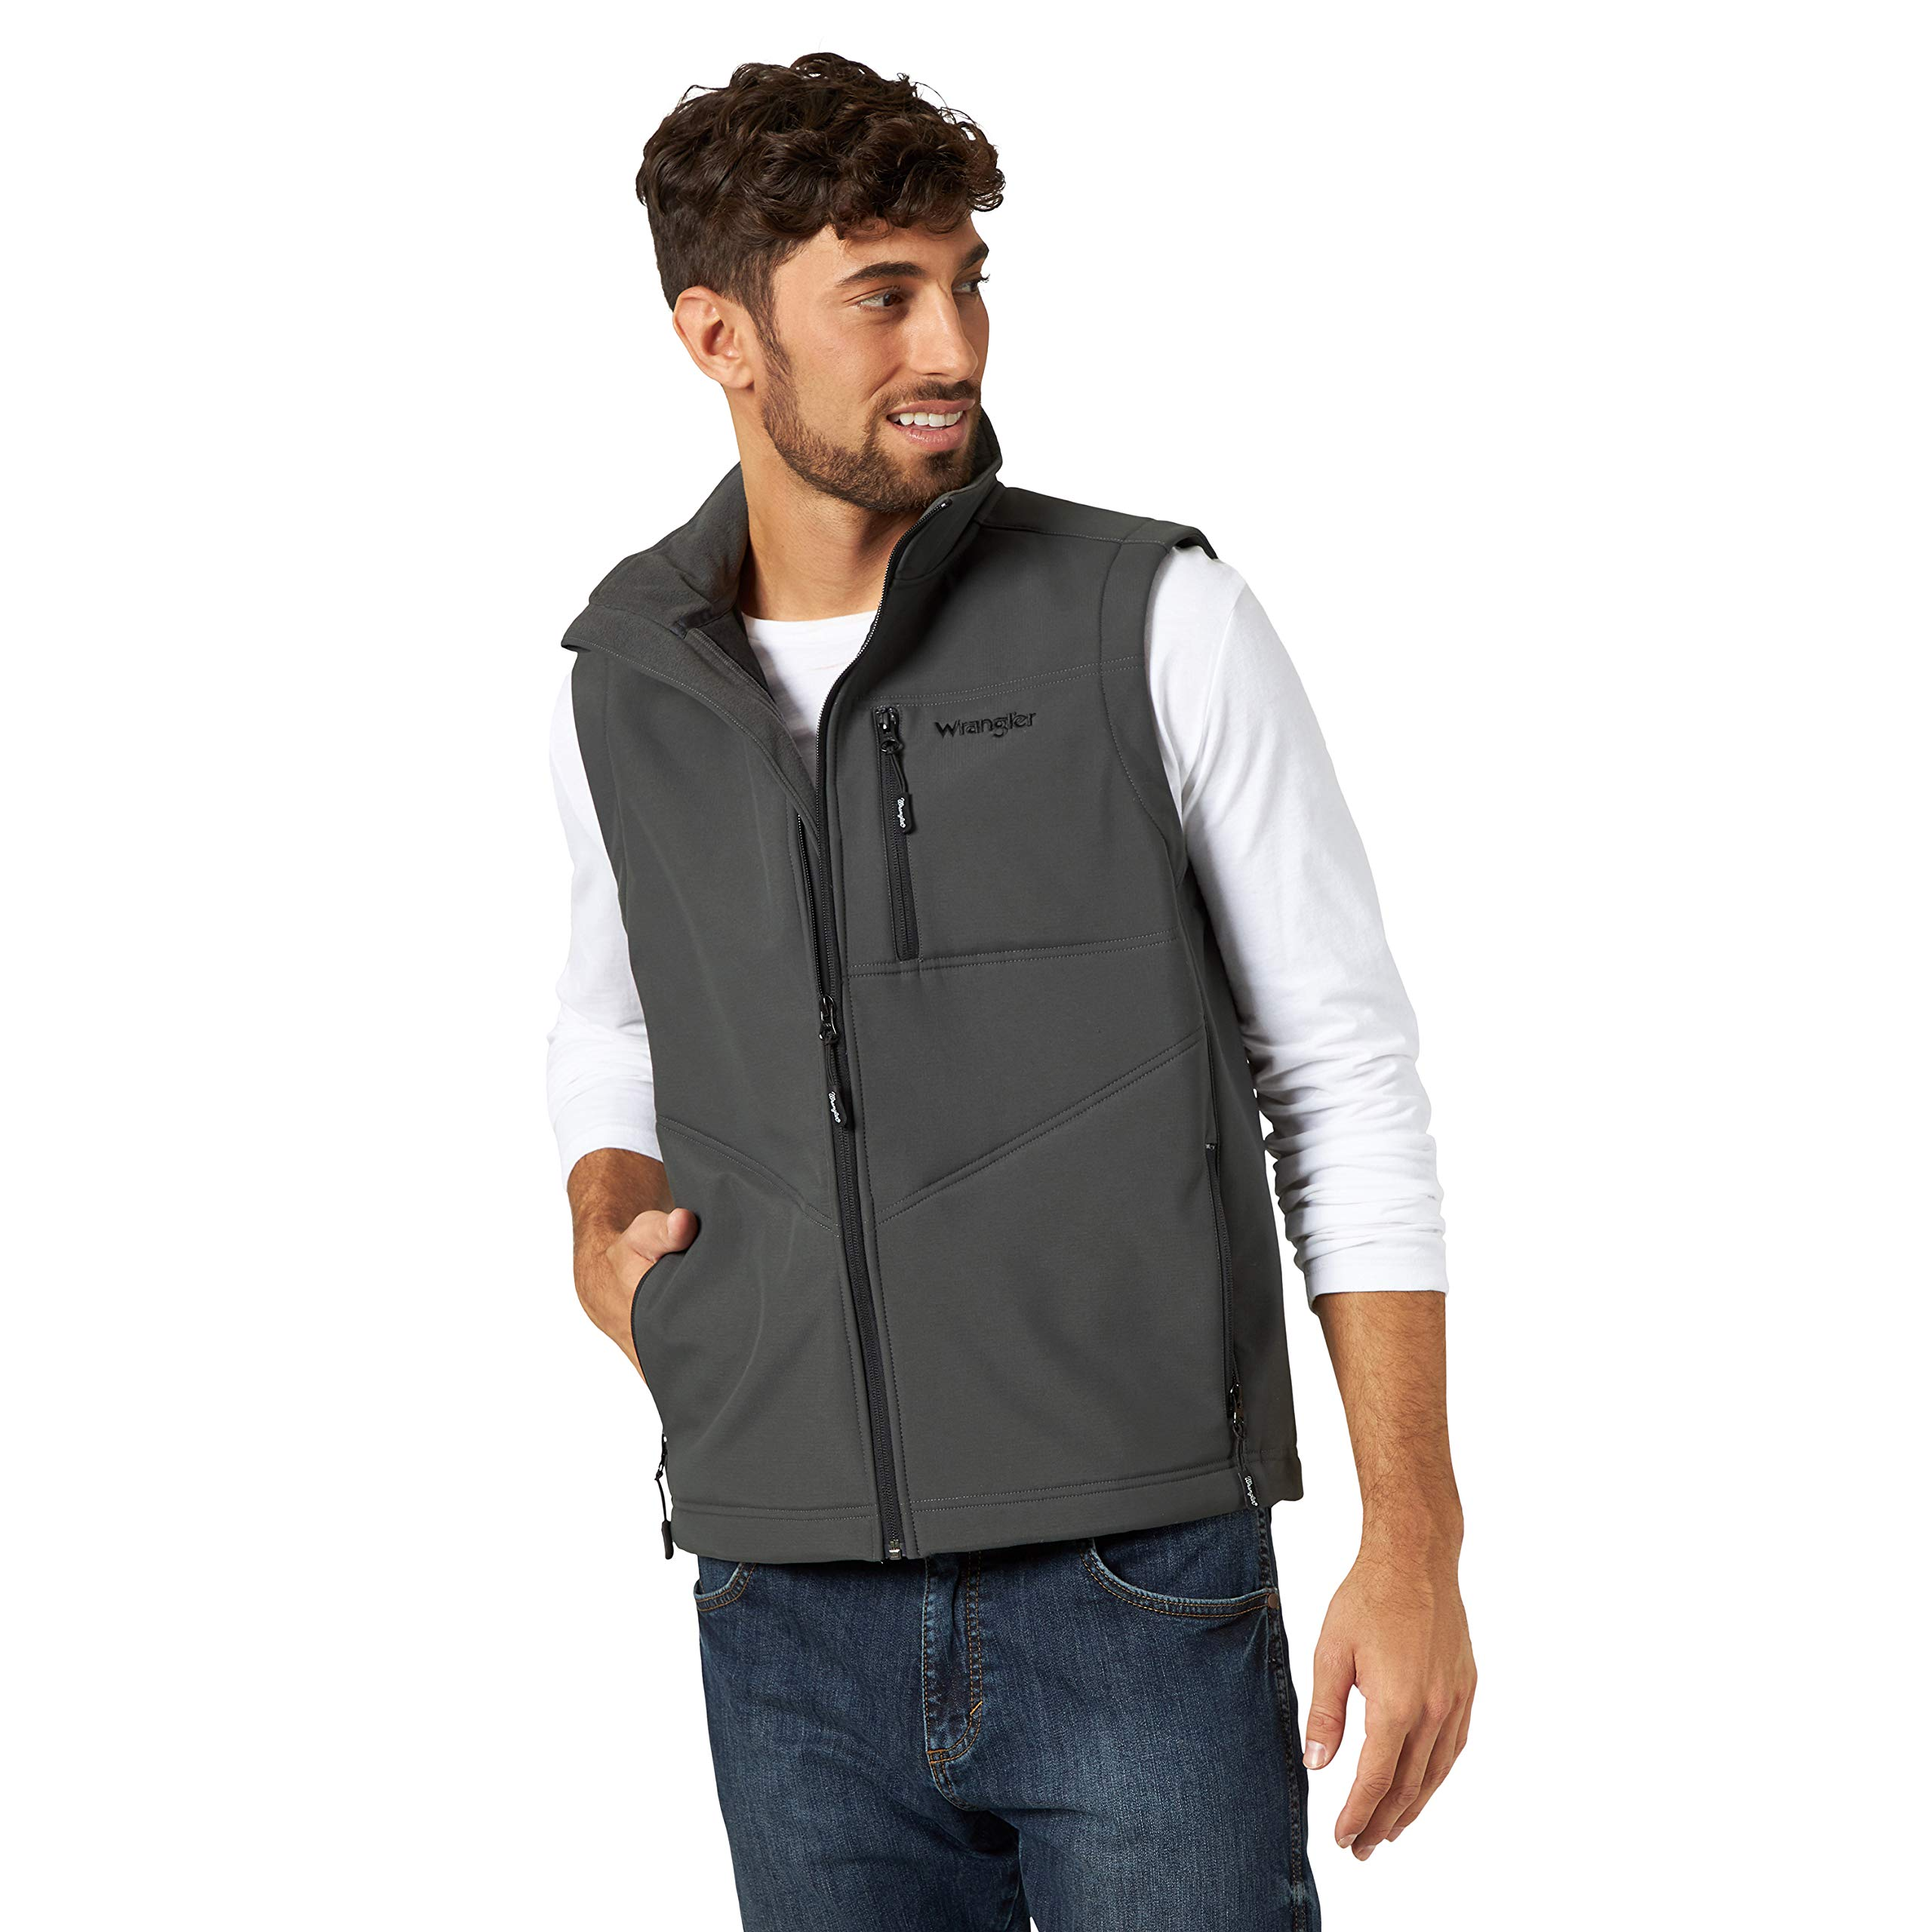 Wrangler Men's Concealed Carry Stretch Trail Vest, Charcoal, 3XT by Wrangler